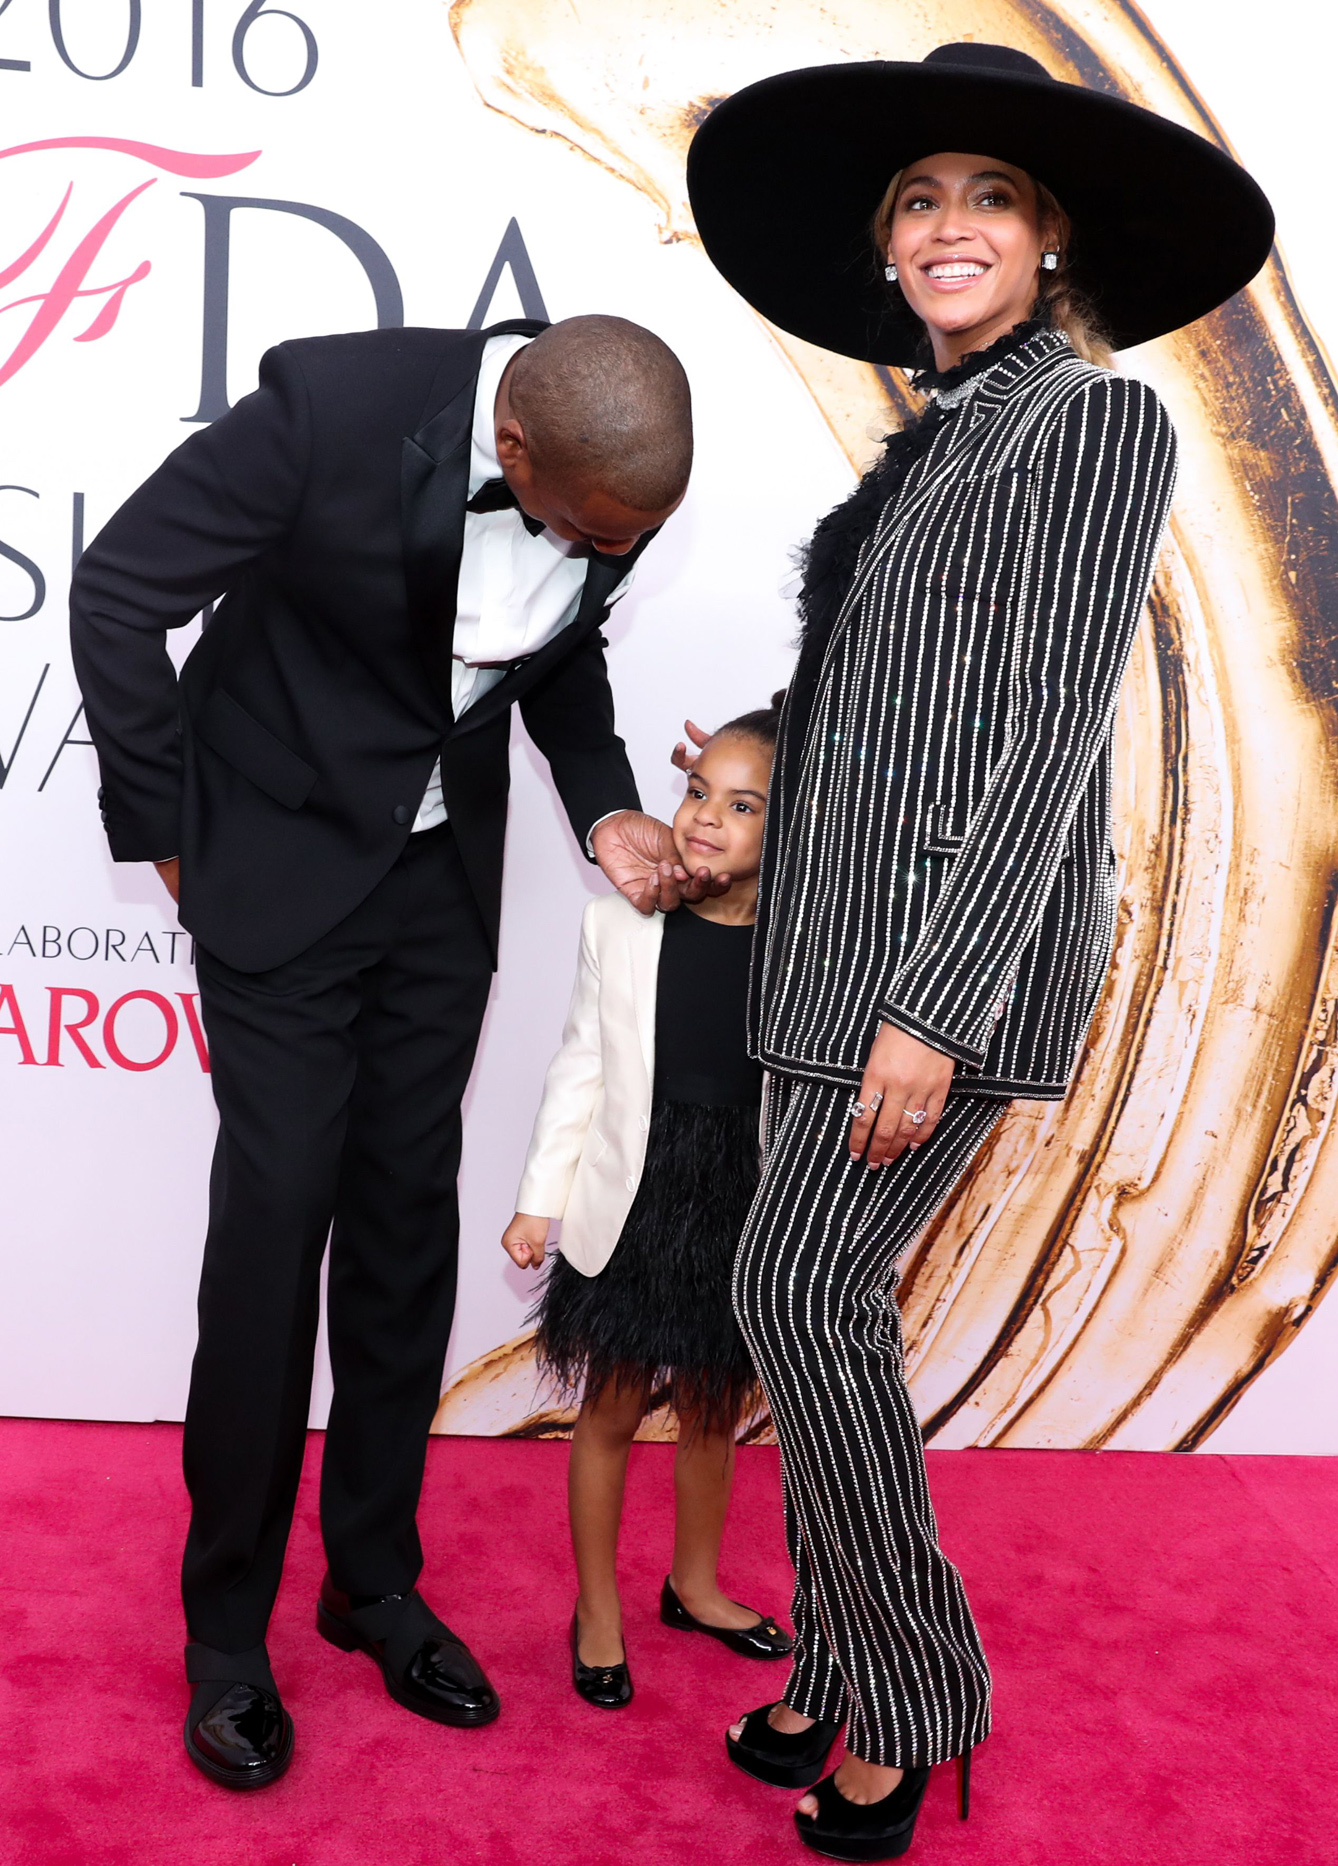 Mandatory Credit: Photo by Neil Rasmus/BFA/REX/Shutterstock (5712373he)Jay Z, Blue Ivy Carter, Beyoncé KnowlesCFDA Fashion Awards, Arrivals, New York, America - 06 Jun 2016